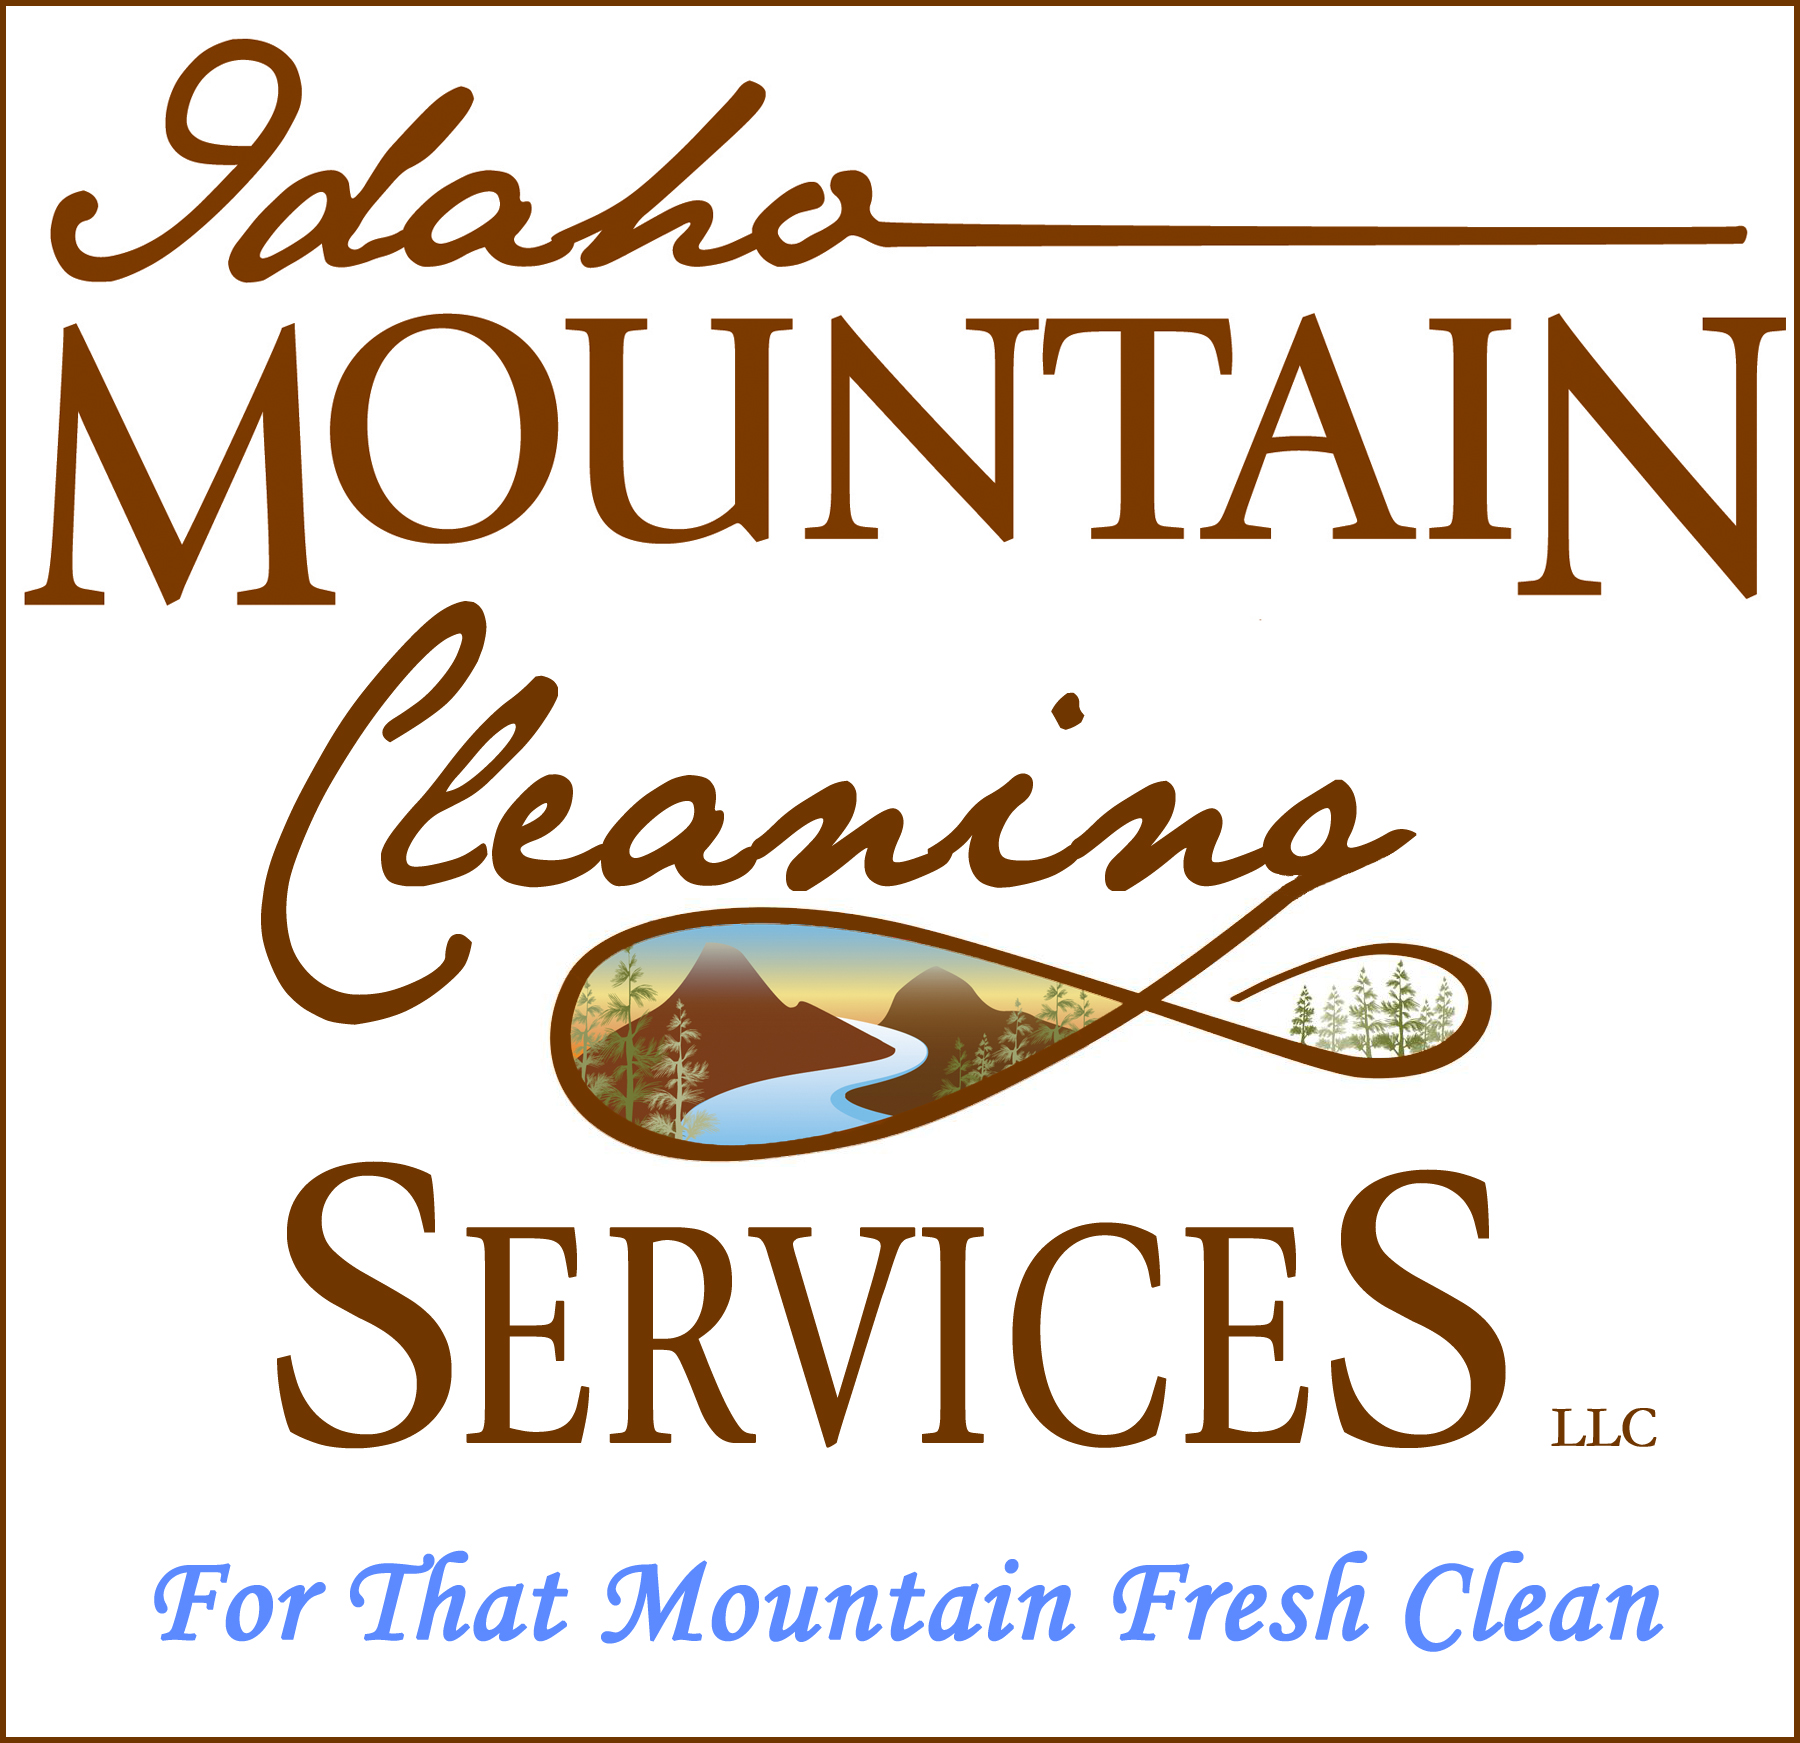 Idaho Mountain Cleaning Services